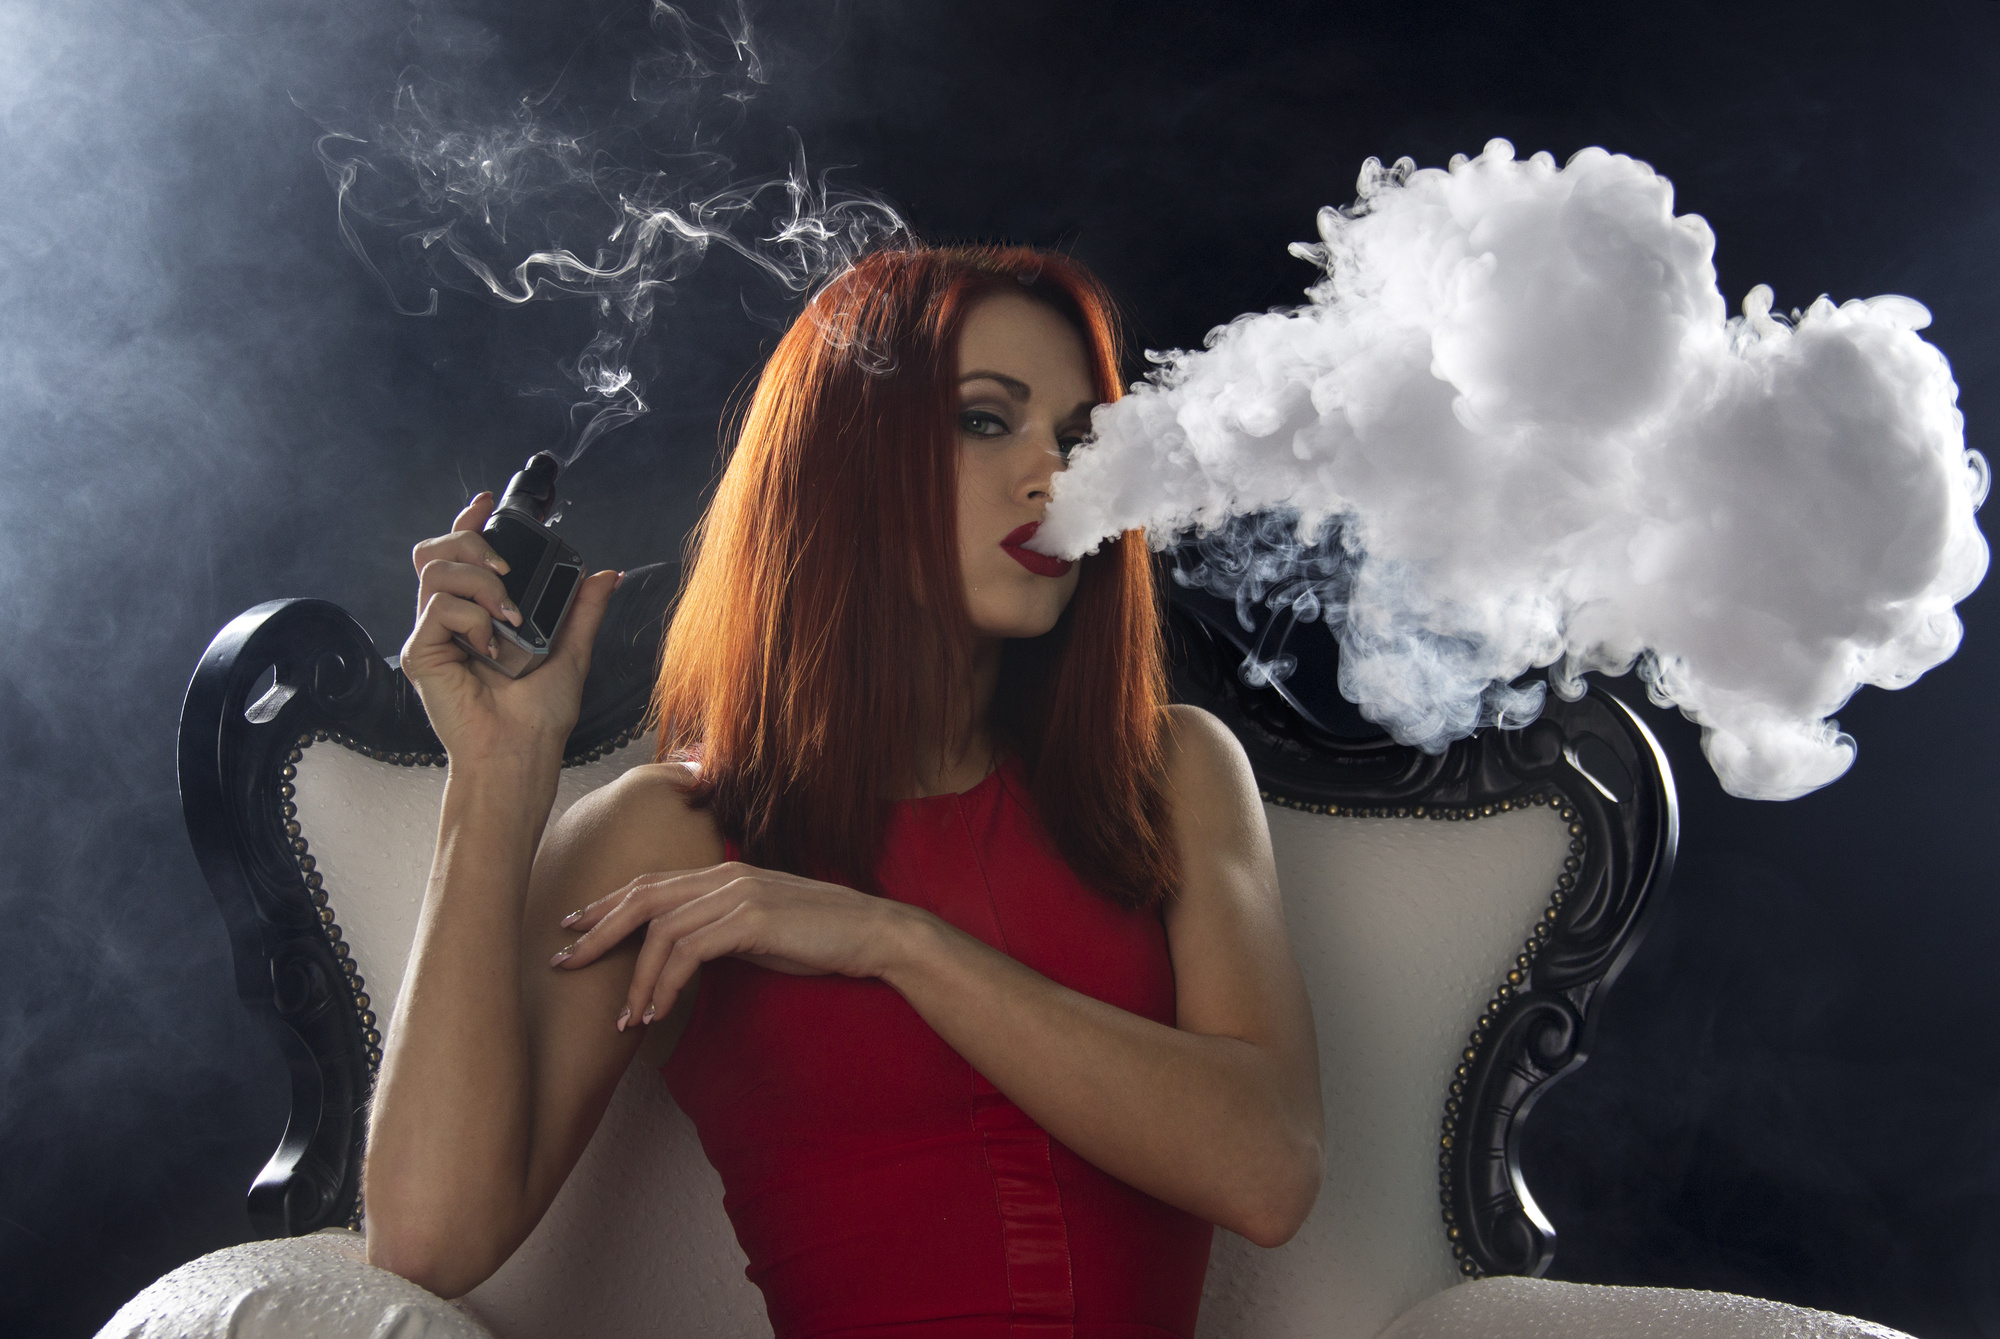 vape blog - 5 Rules Of Writing Amazing Online Content For Your Vape Blog